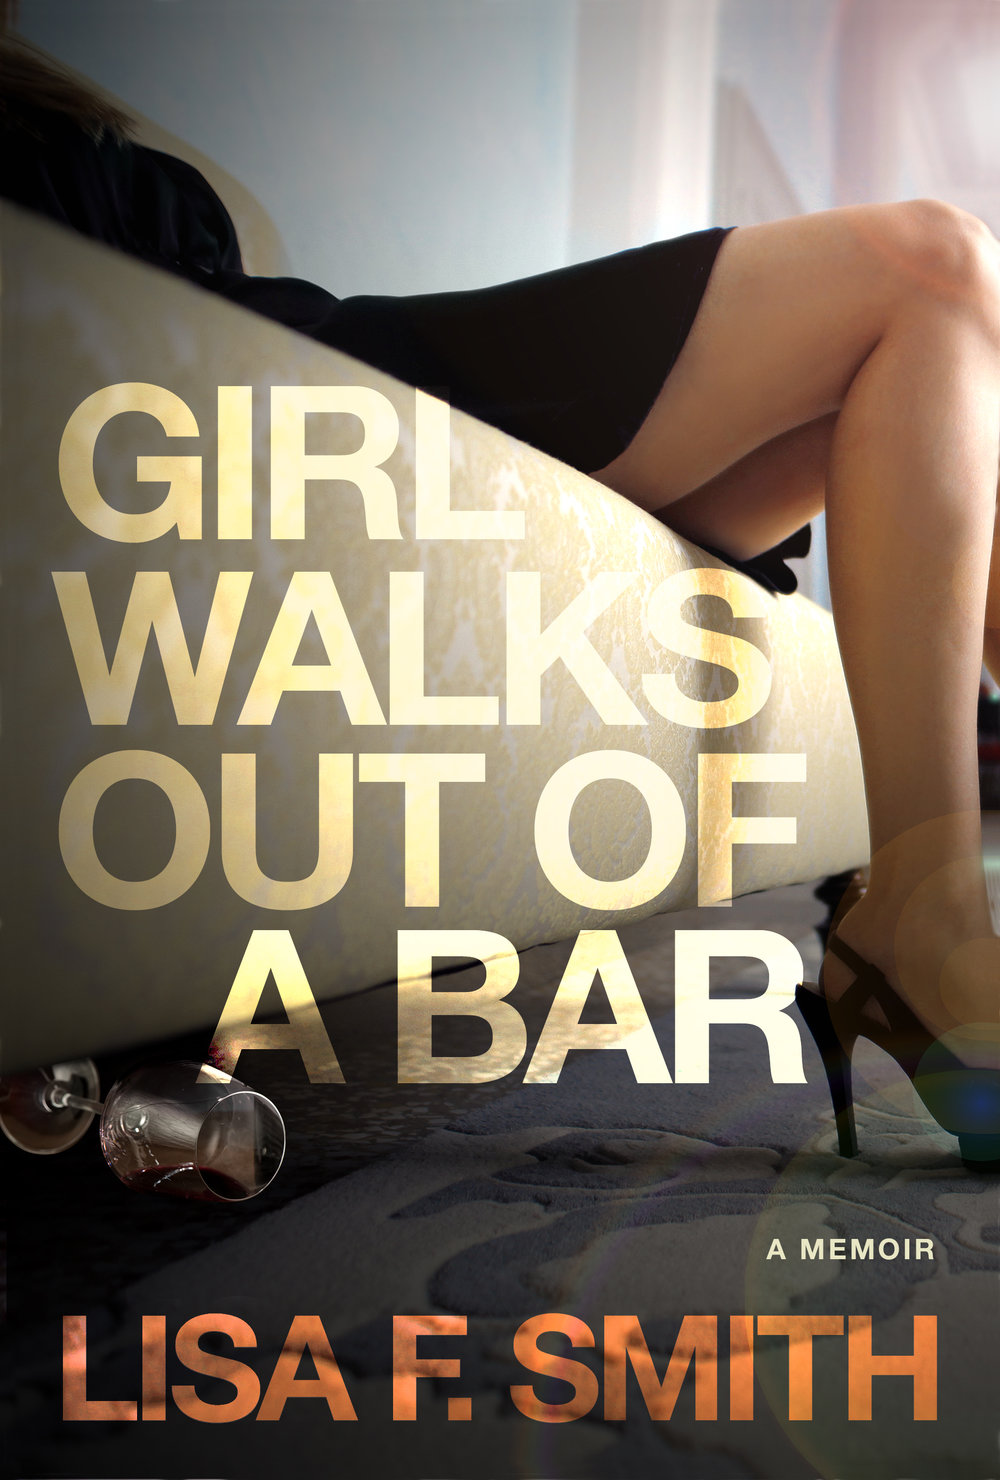 To read more about author Lisa Smith, of Girl Walks out of a Bar, click here